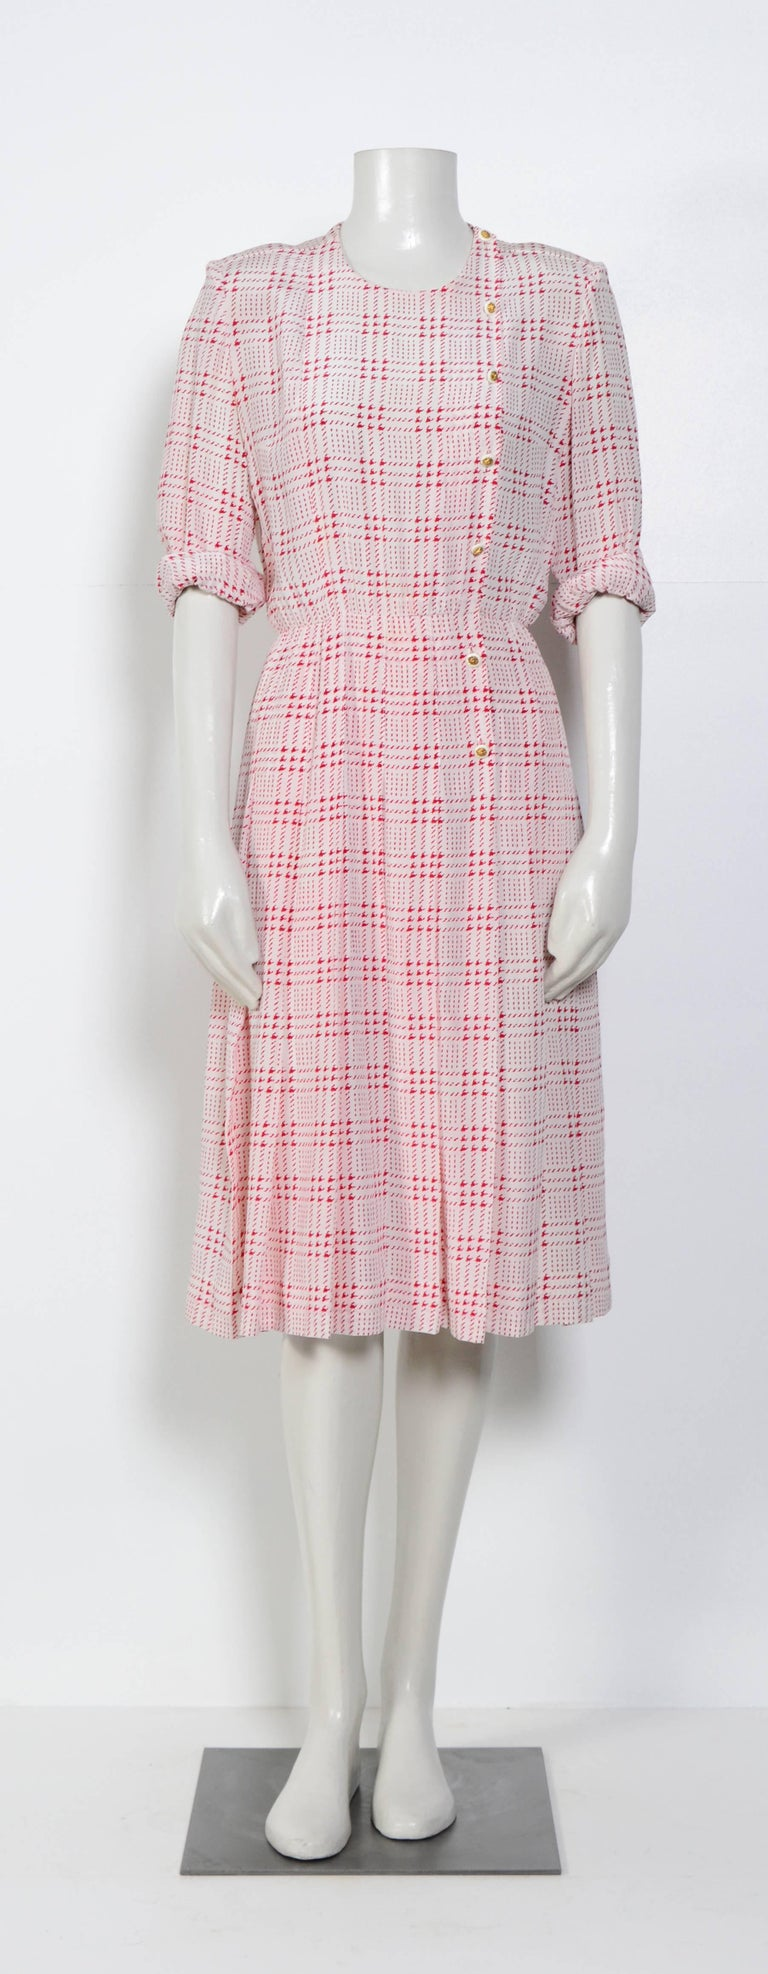 Chanel printed white & pink silk dress with matching scarf For Sale 1